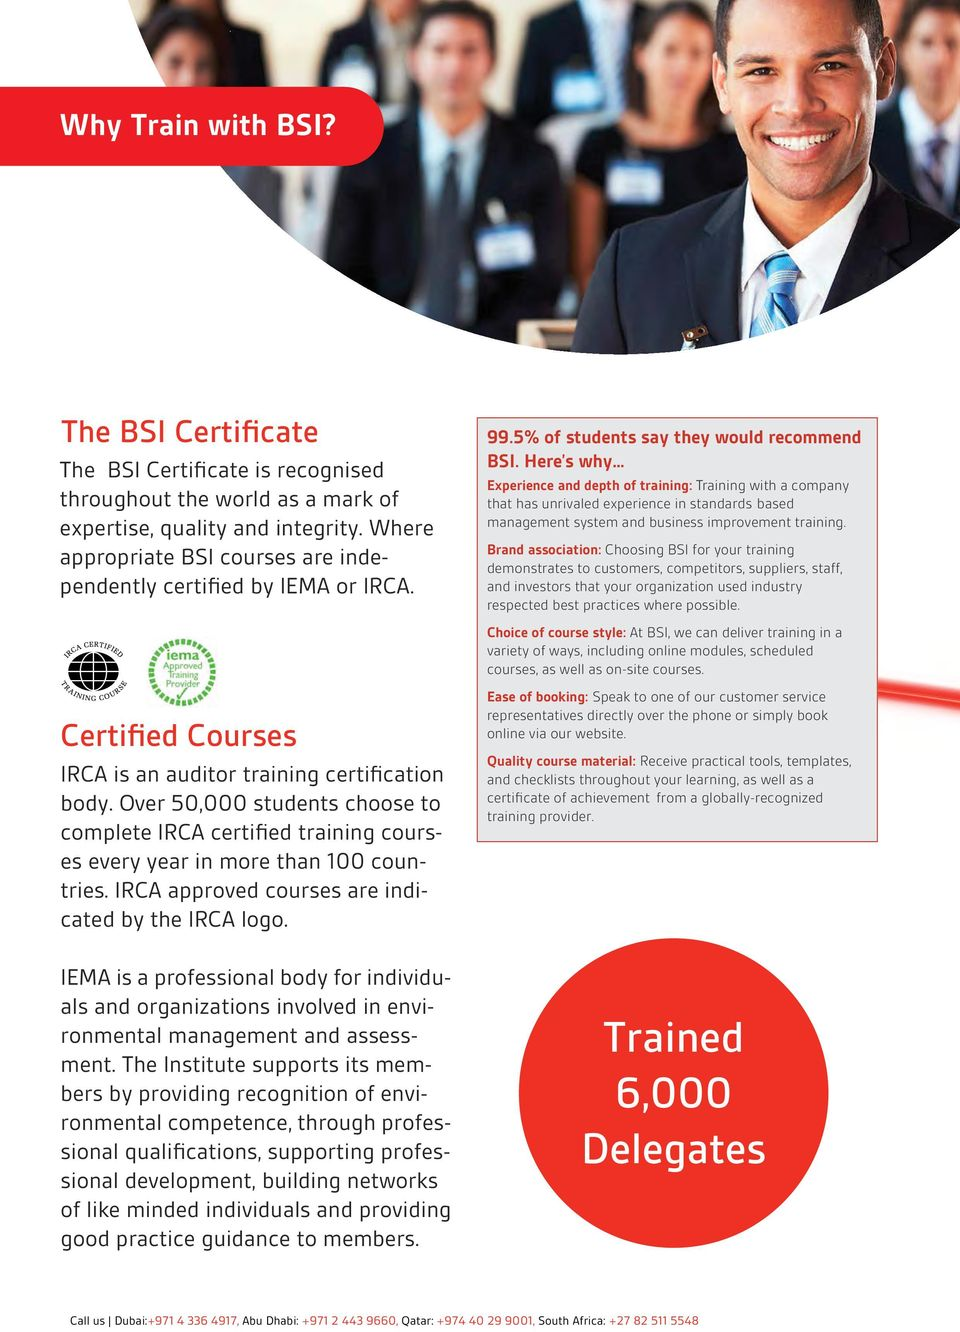 Over 50,000 students choose to complete IRCA certified training courses every year in more than 100 countries. IRCA approved courses are indicated by the IRCA logo.